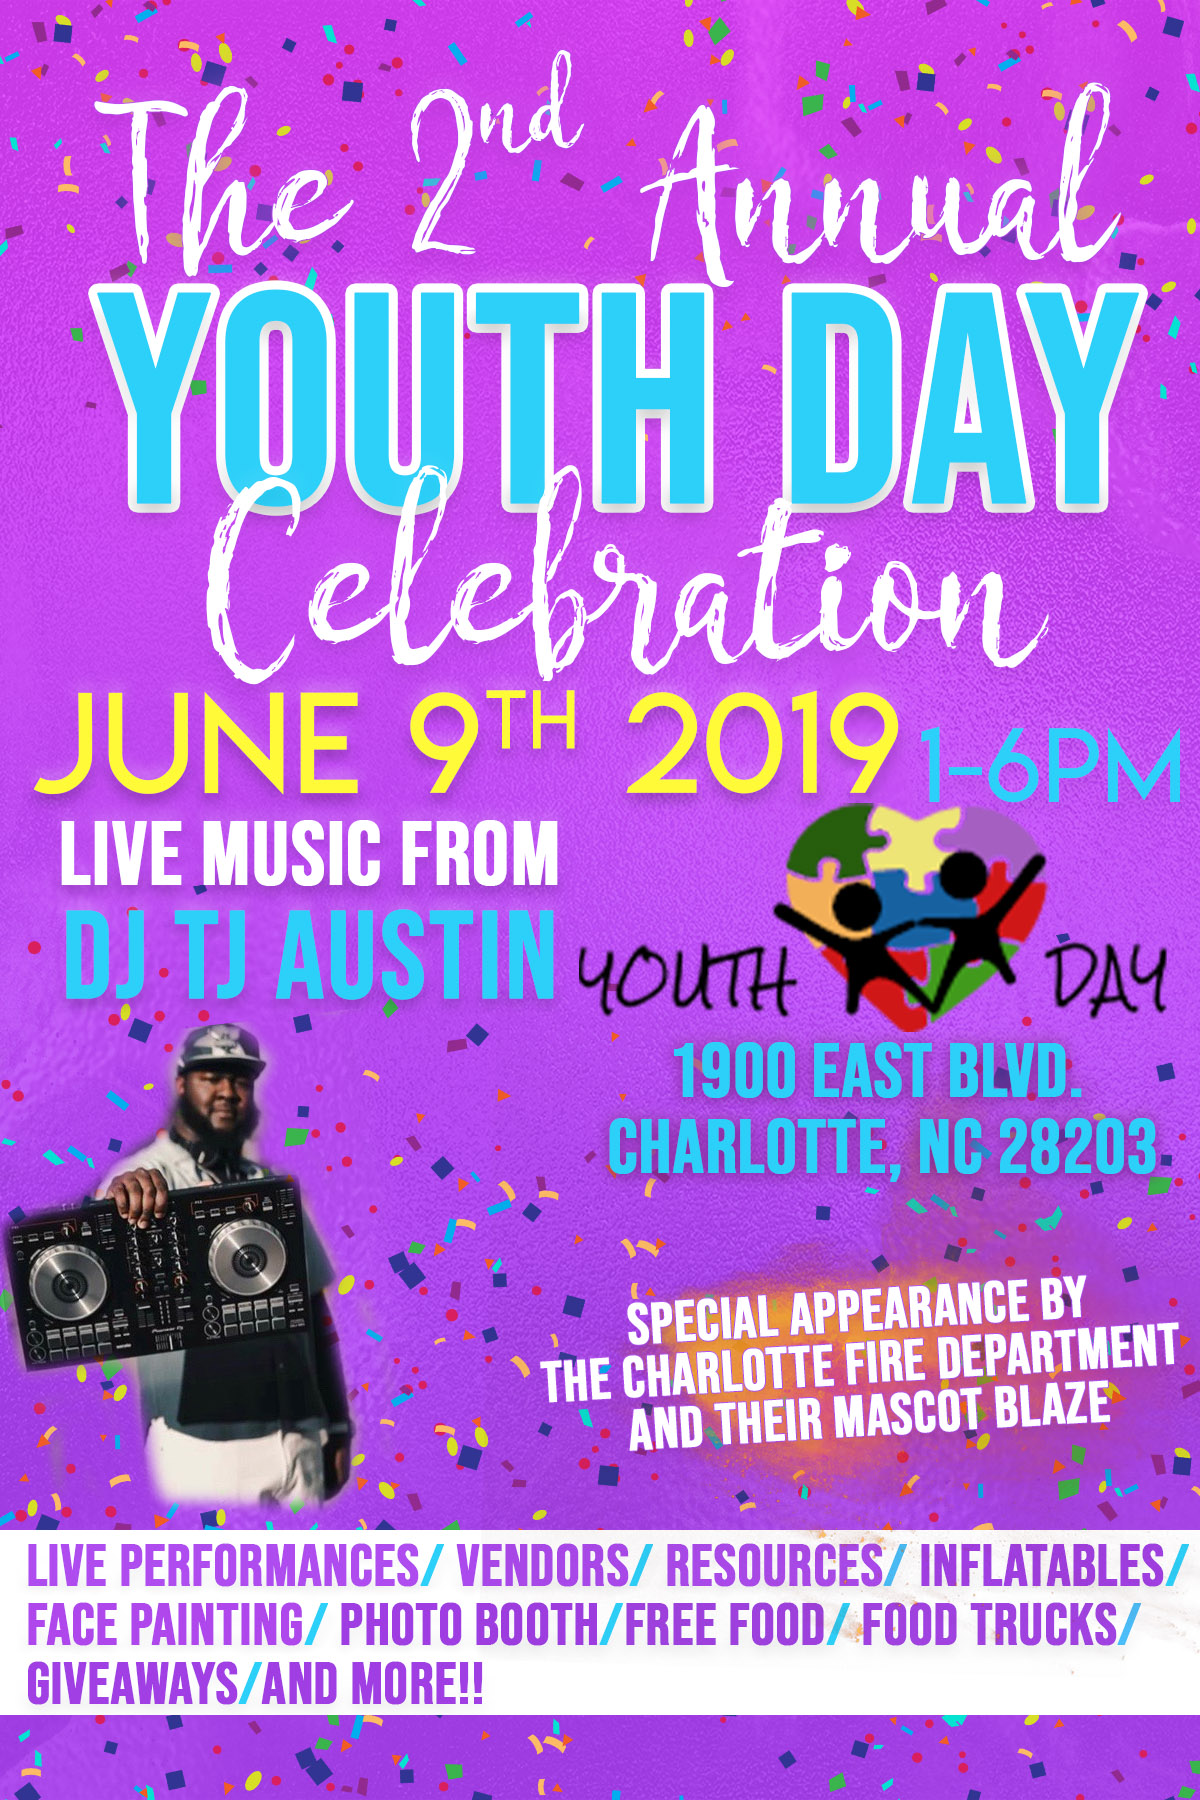 2nd Annual Youth Day celebration